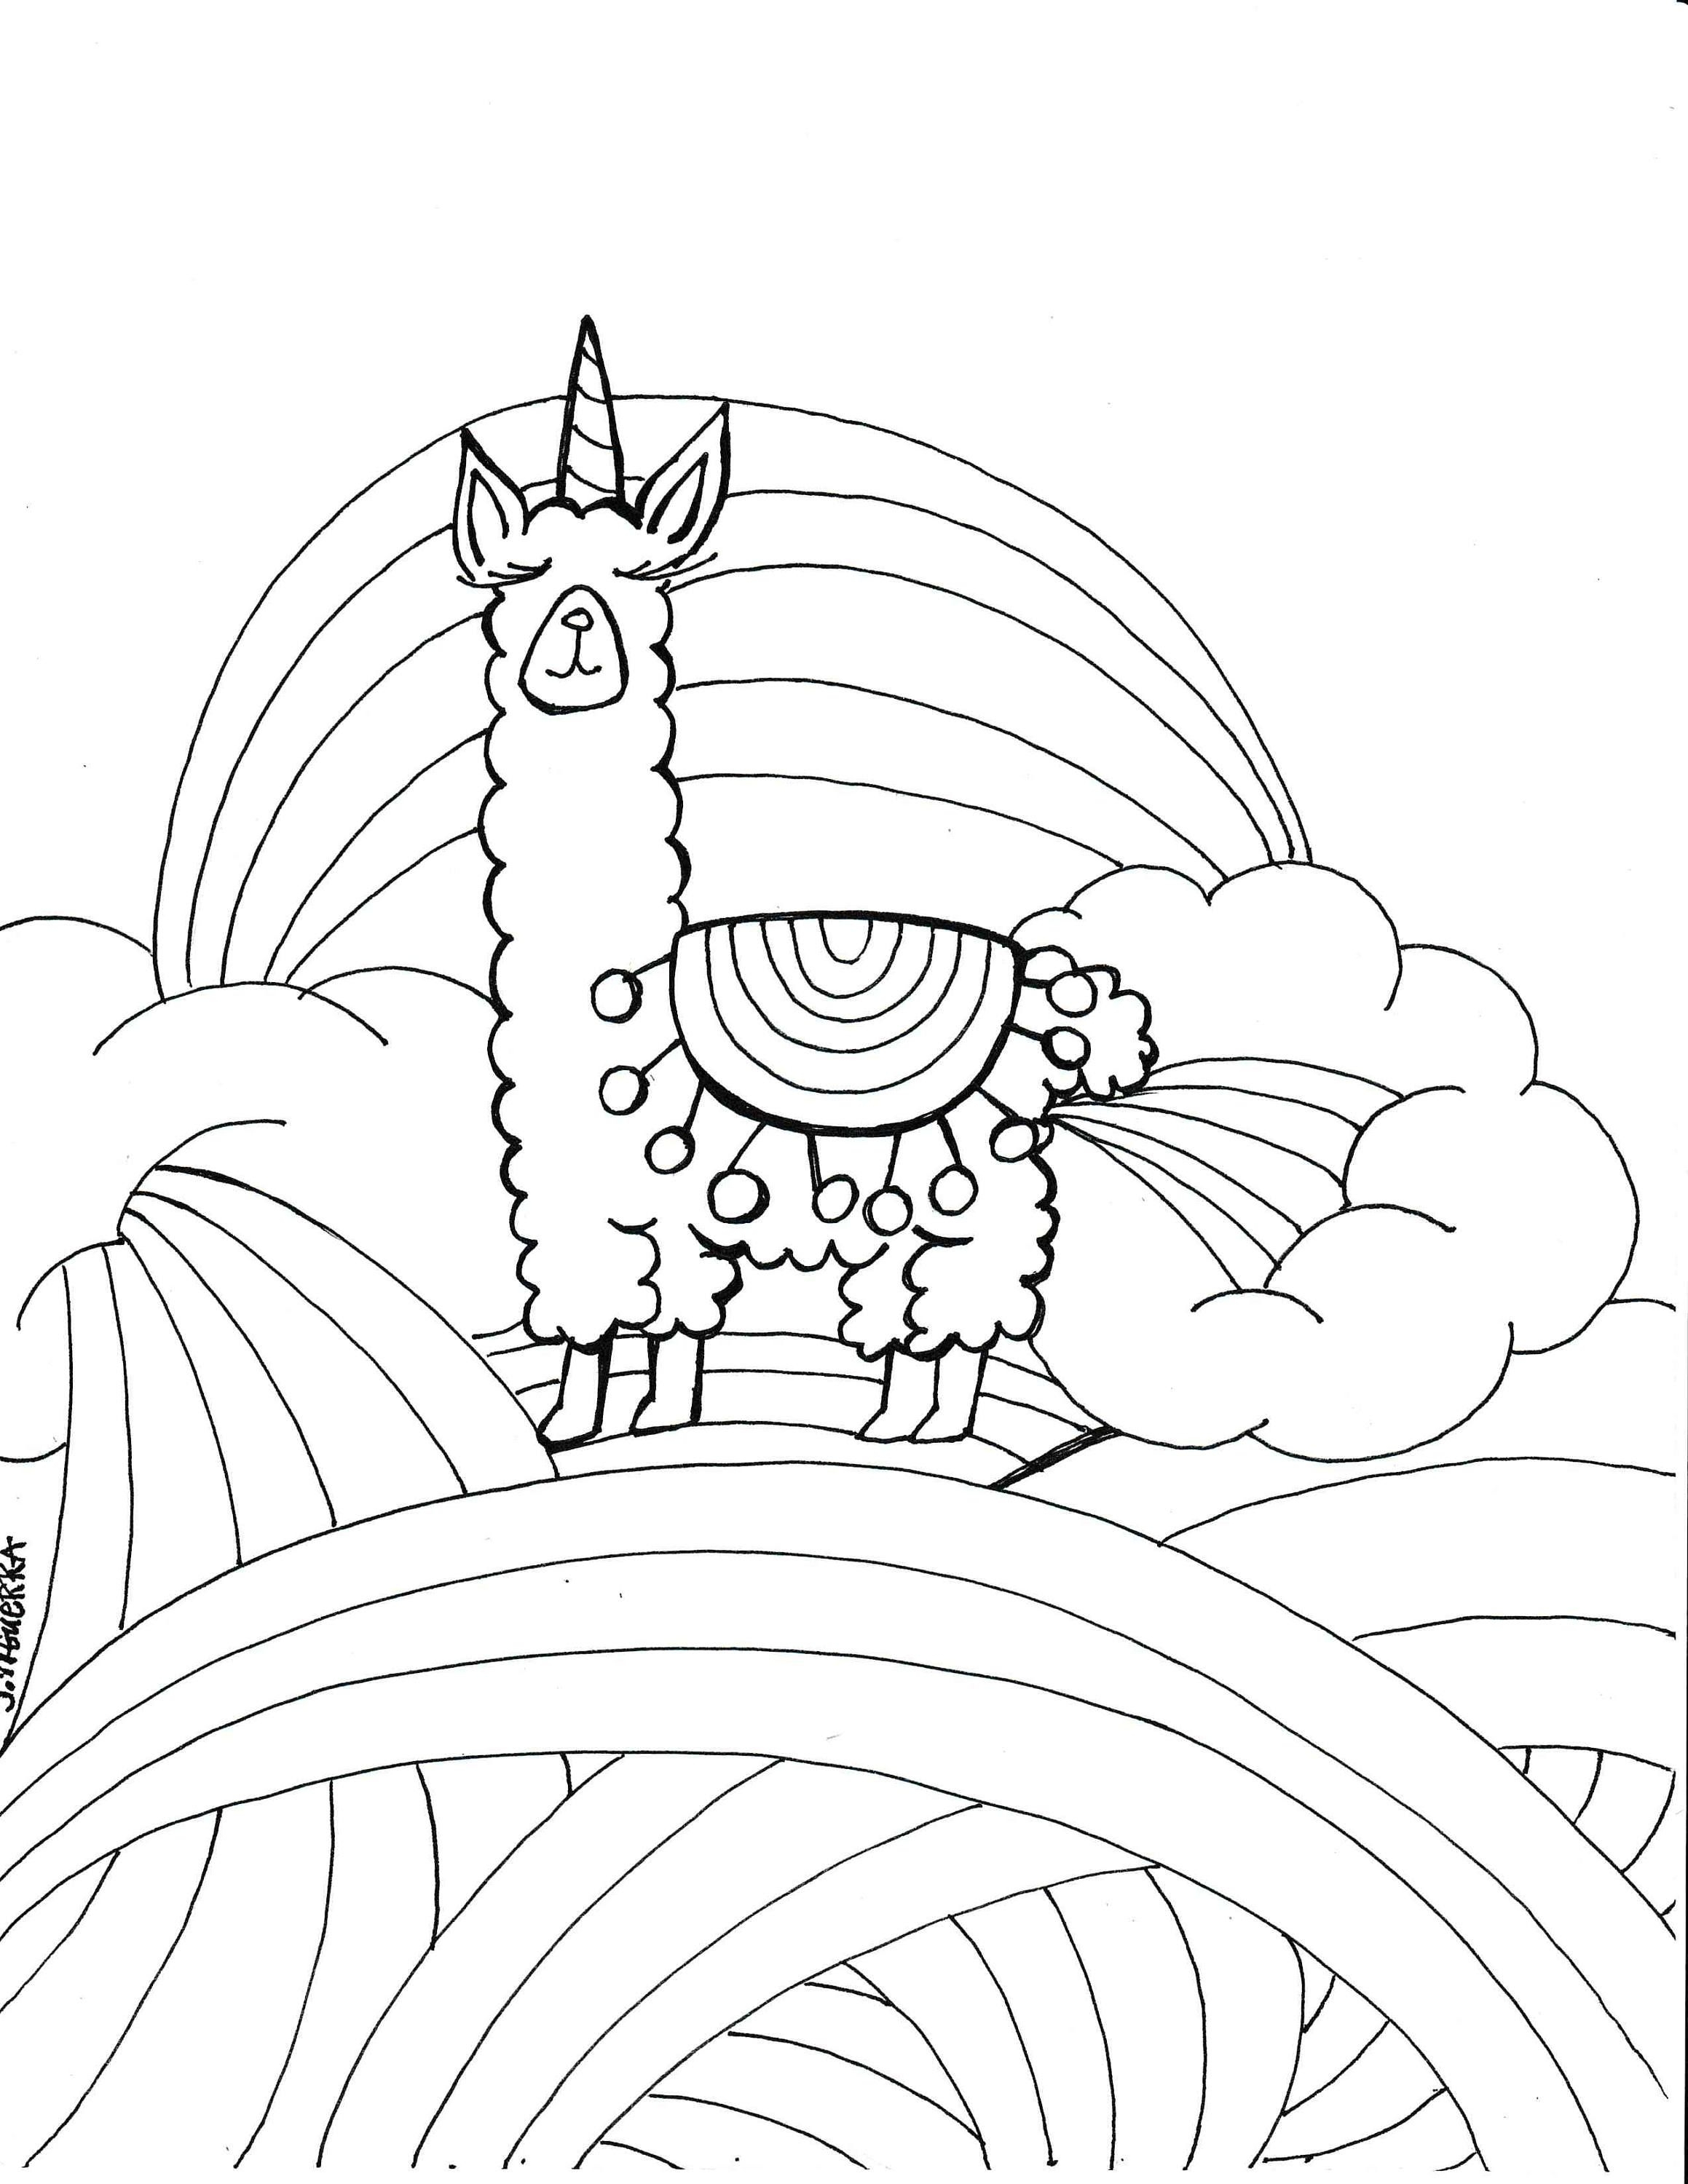 30 Fish Coloring Pages Pdf Collection - Coloring Sheets